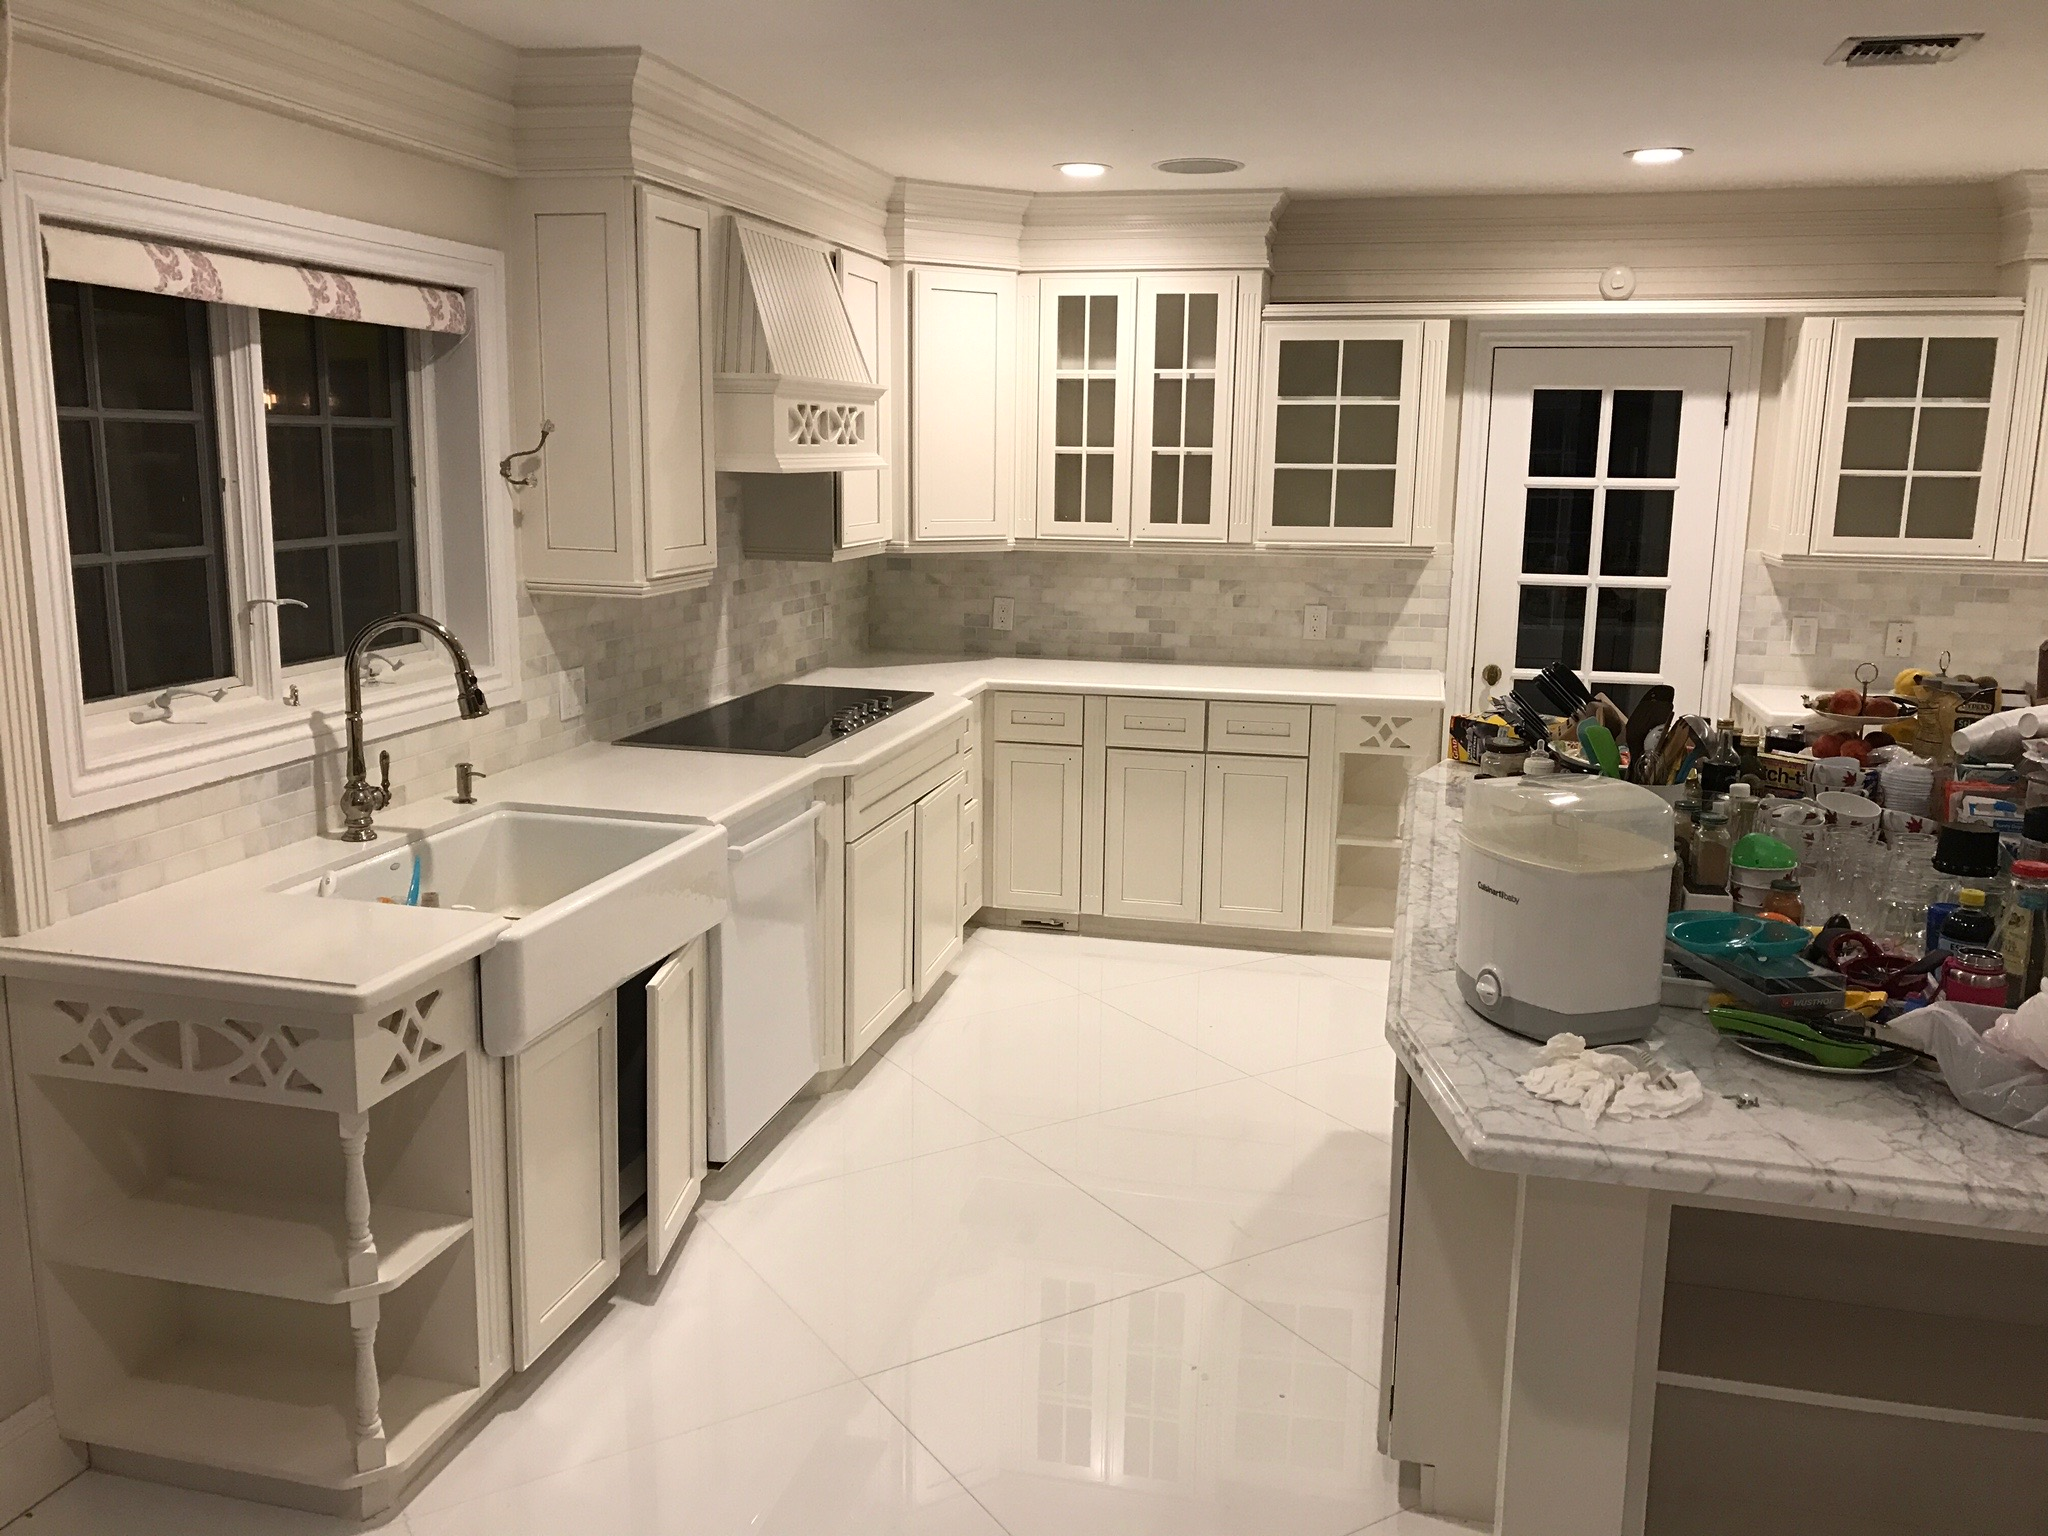 Reglazing Kitchen Cabinets Home Expert Services Solutions Llc